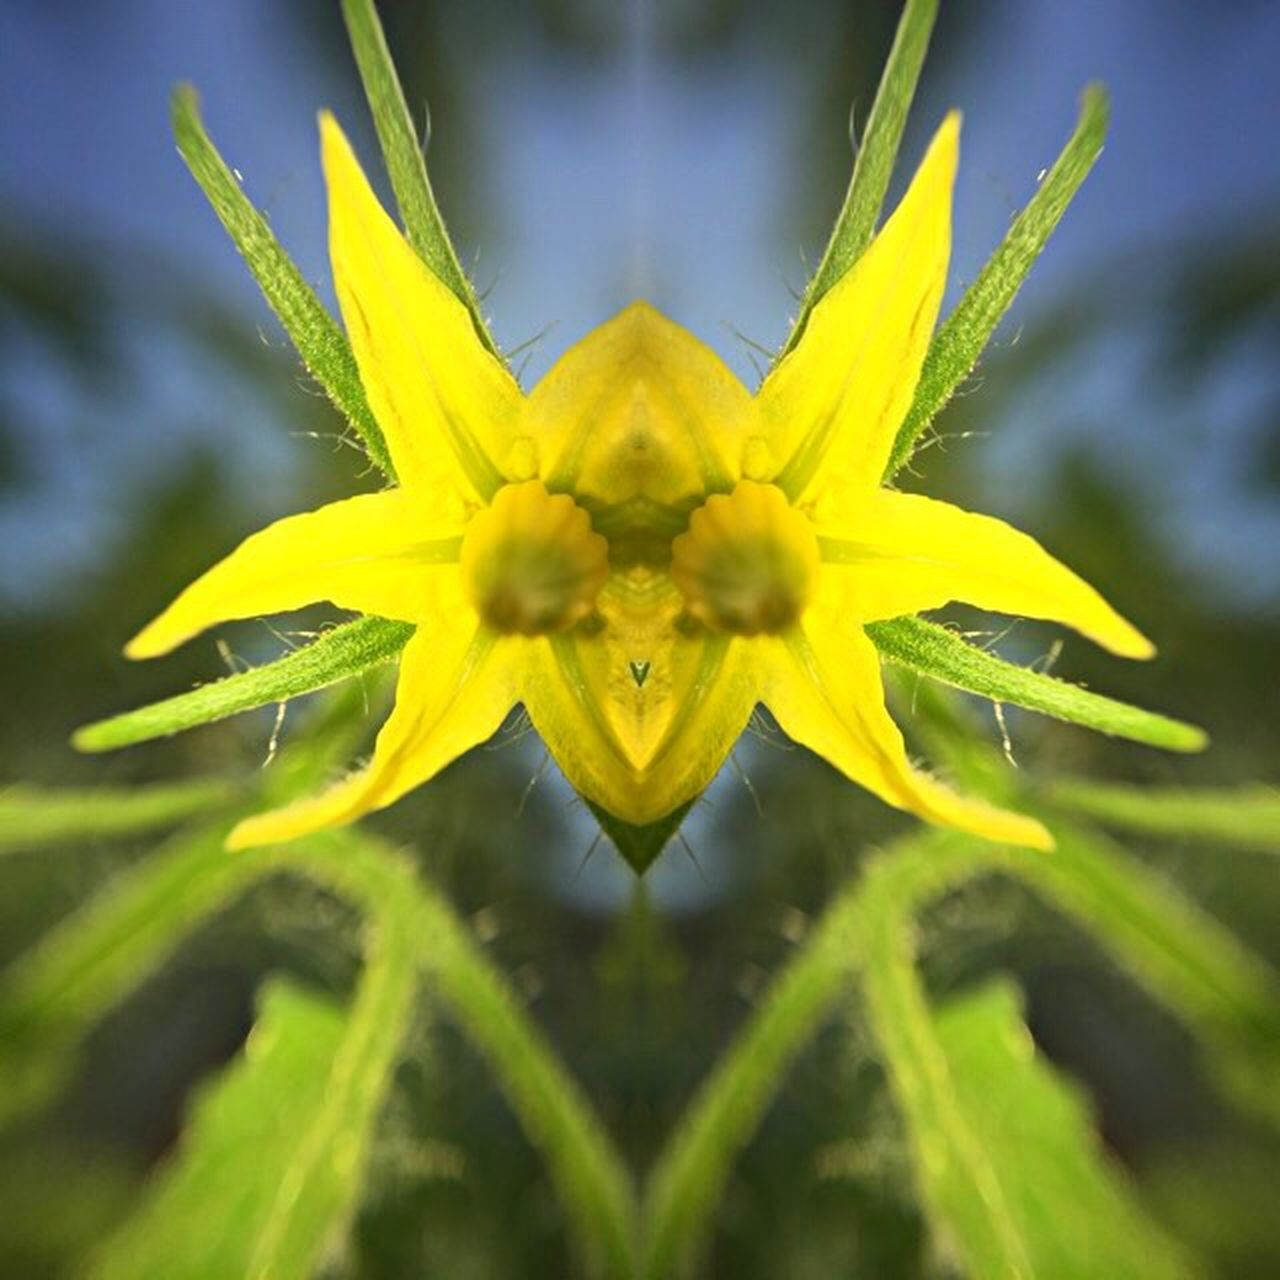 flower, nature, plant, fragility, close-up, growth, yellow, beauty in nature, flower head, uncultivated, freshness, outdoors, petal, springtime, alternative medicine, day, green color, summer, no people, sunflower, herbal medicine